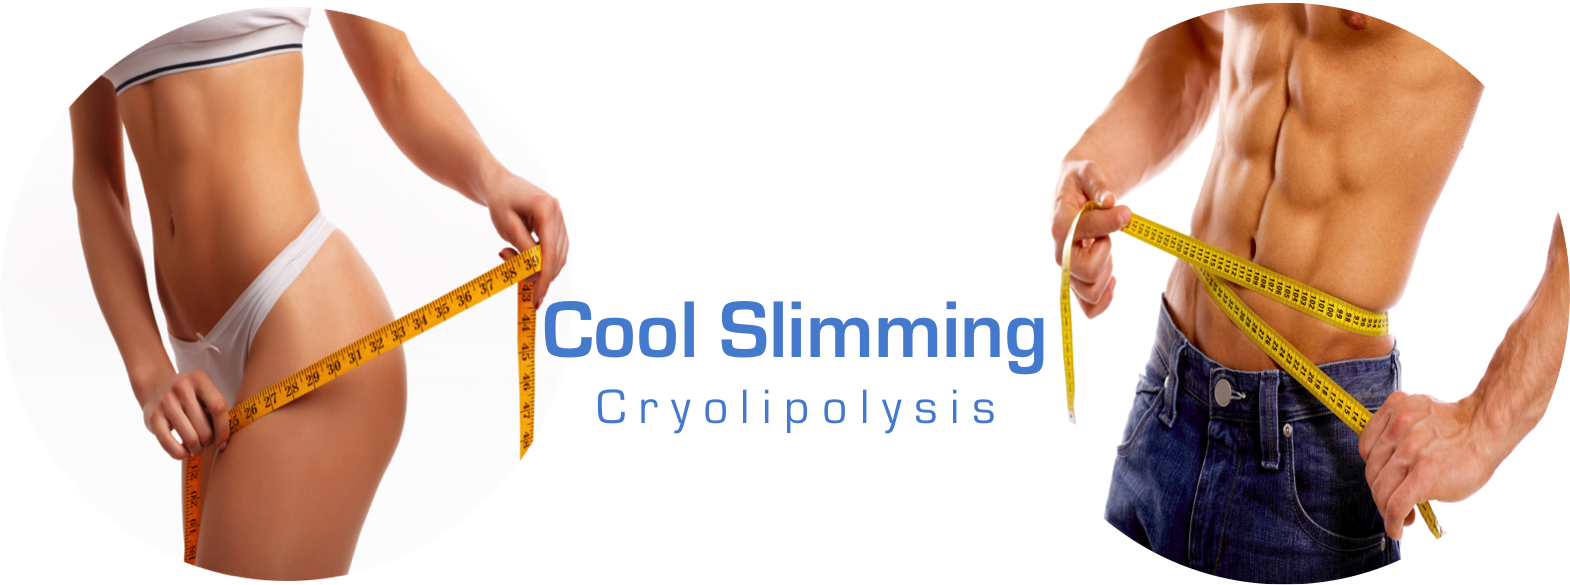 Cool Slimming Cryolypolysis